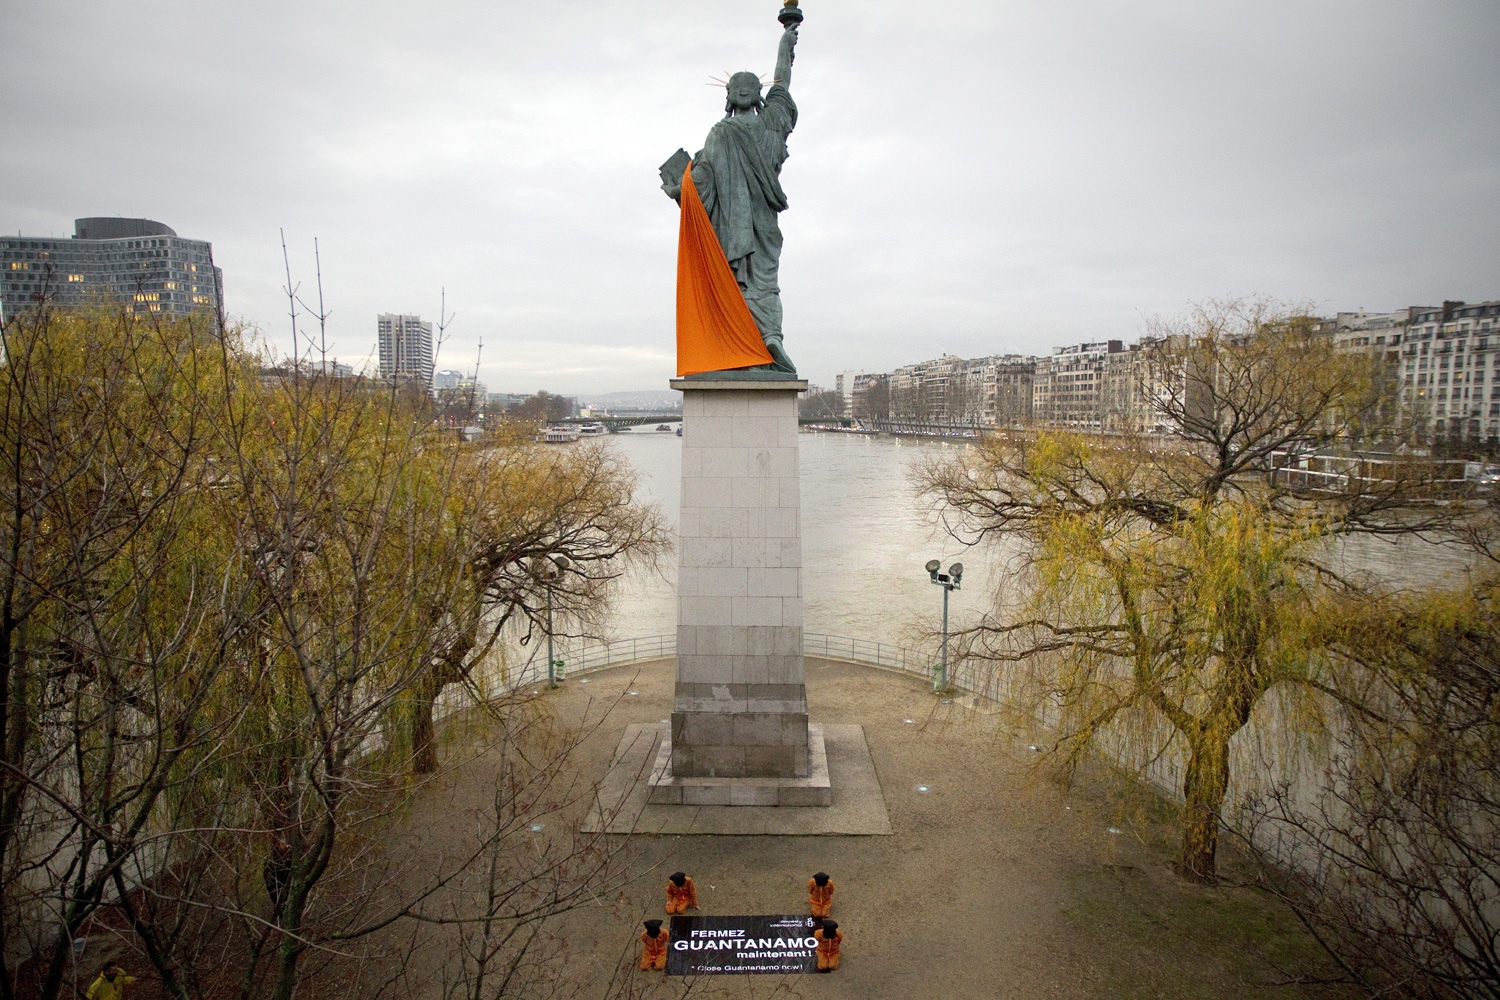 January 10, 2012. Amnesty International activists, dressed in orange jumpsuits similar to those worn by prisoners at the US detention camp in Guantanamo Bay, demonstrate next to the scale model of the statue of Liberty in Paris against the 10th anniversary of the opening of the prison.